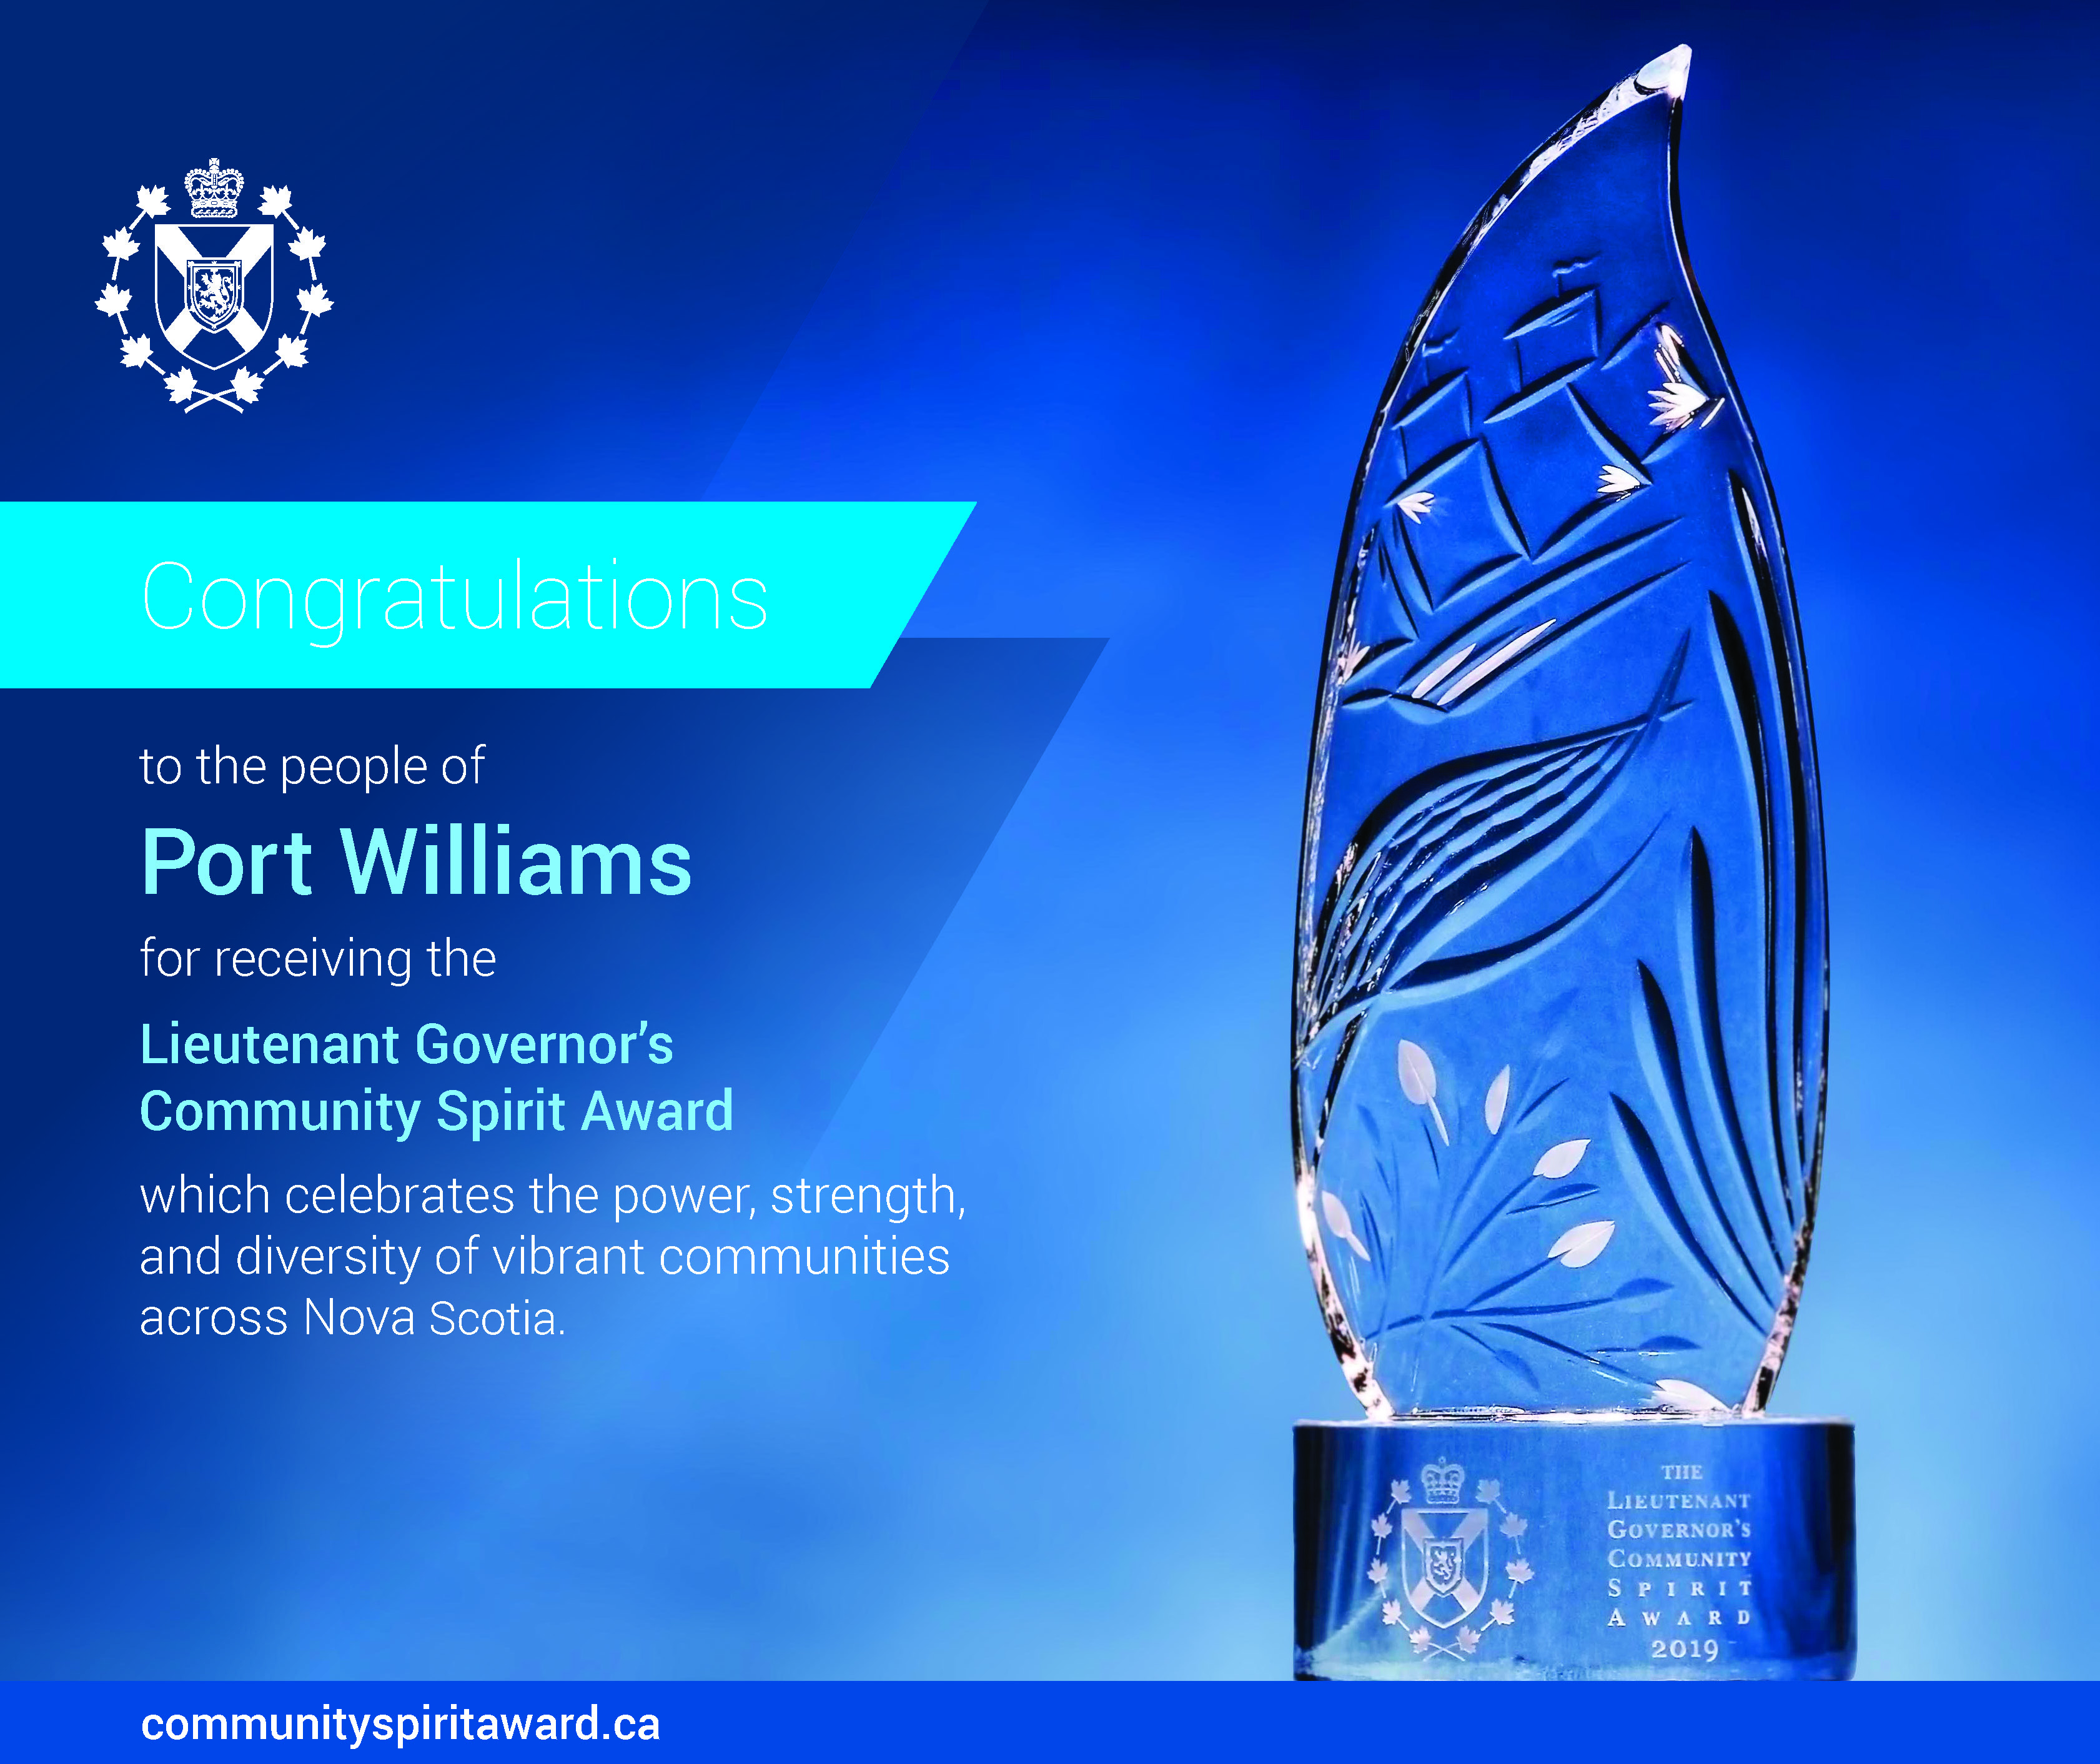 CommunitySpiritAward